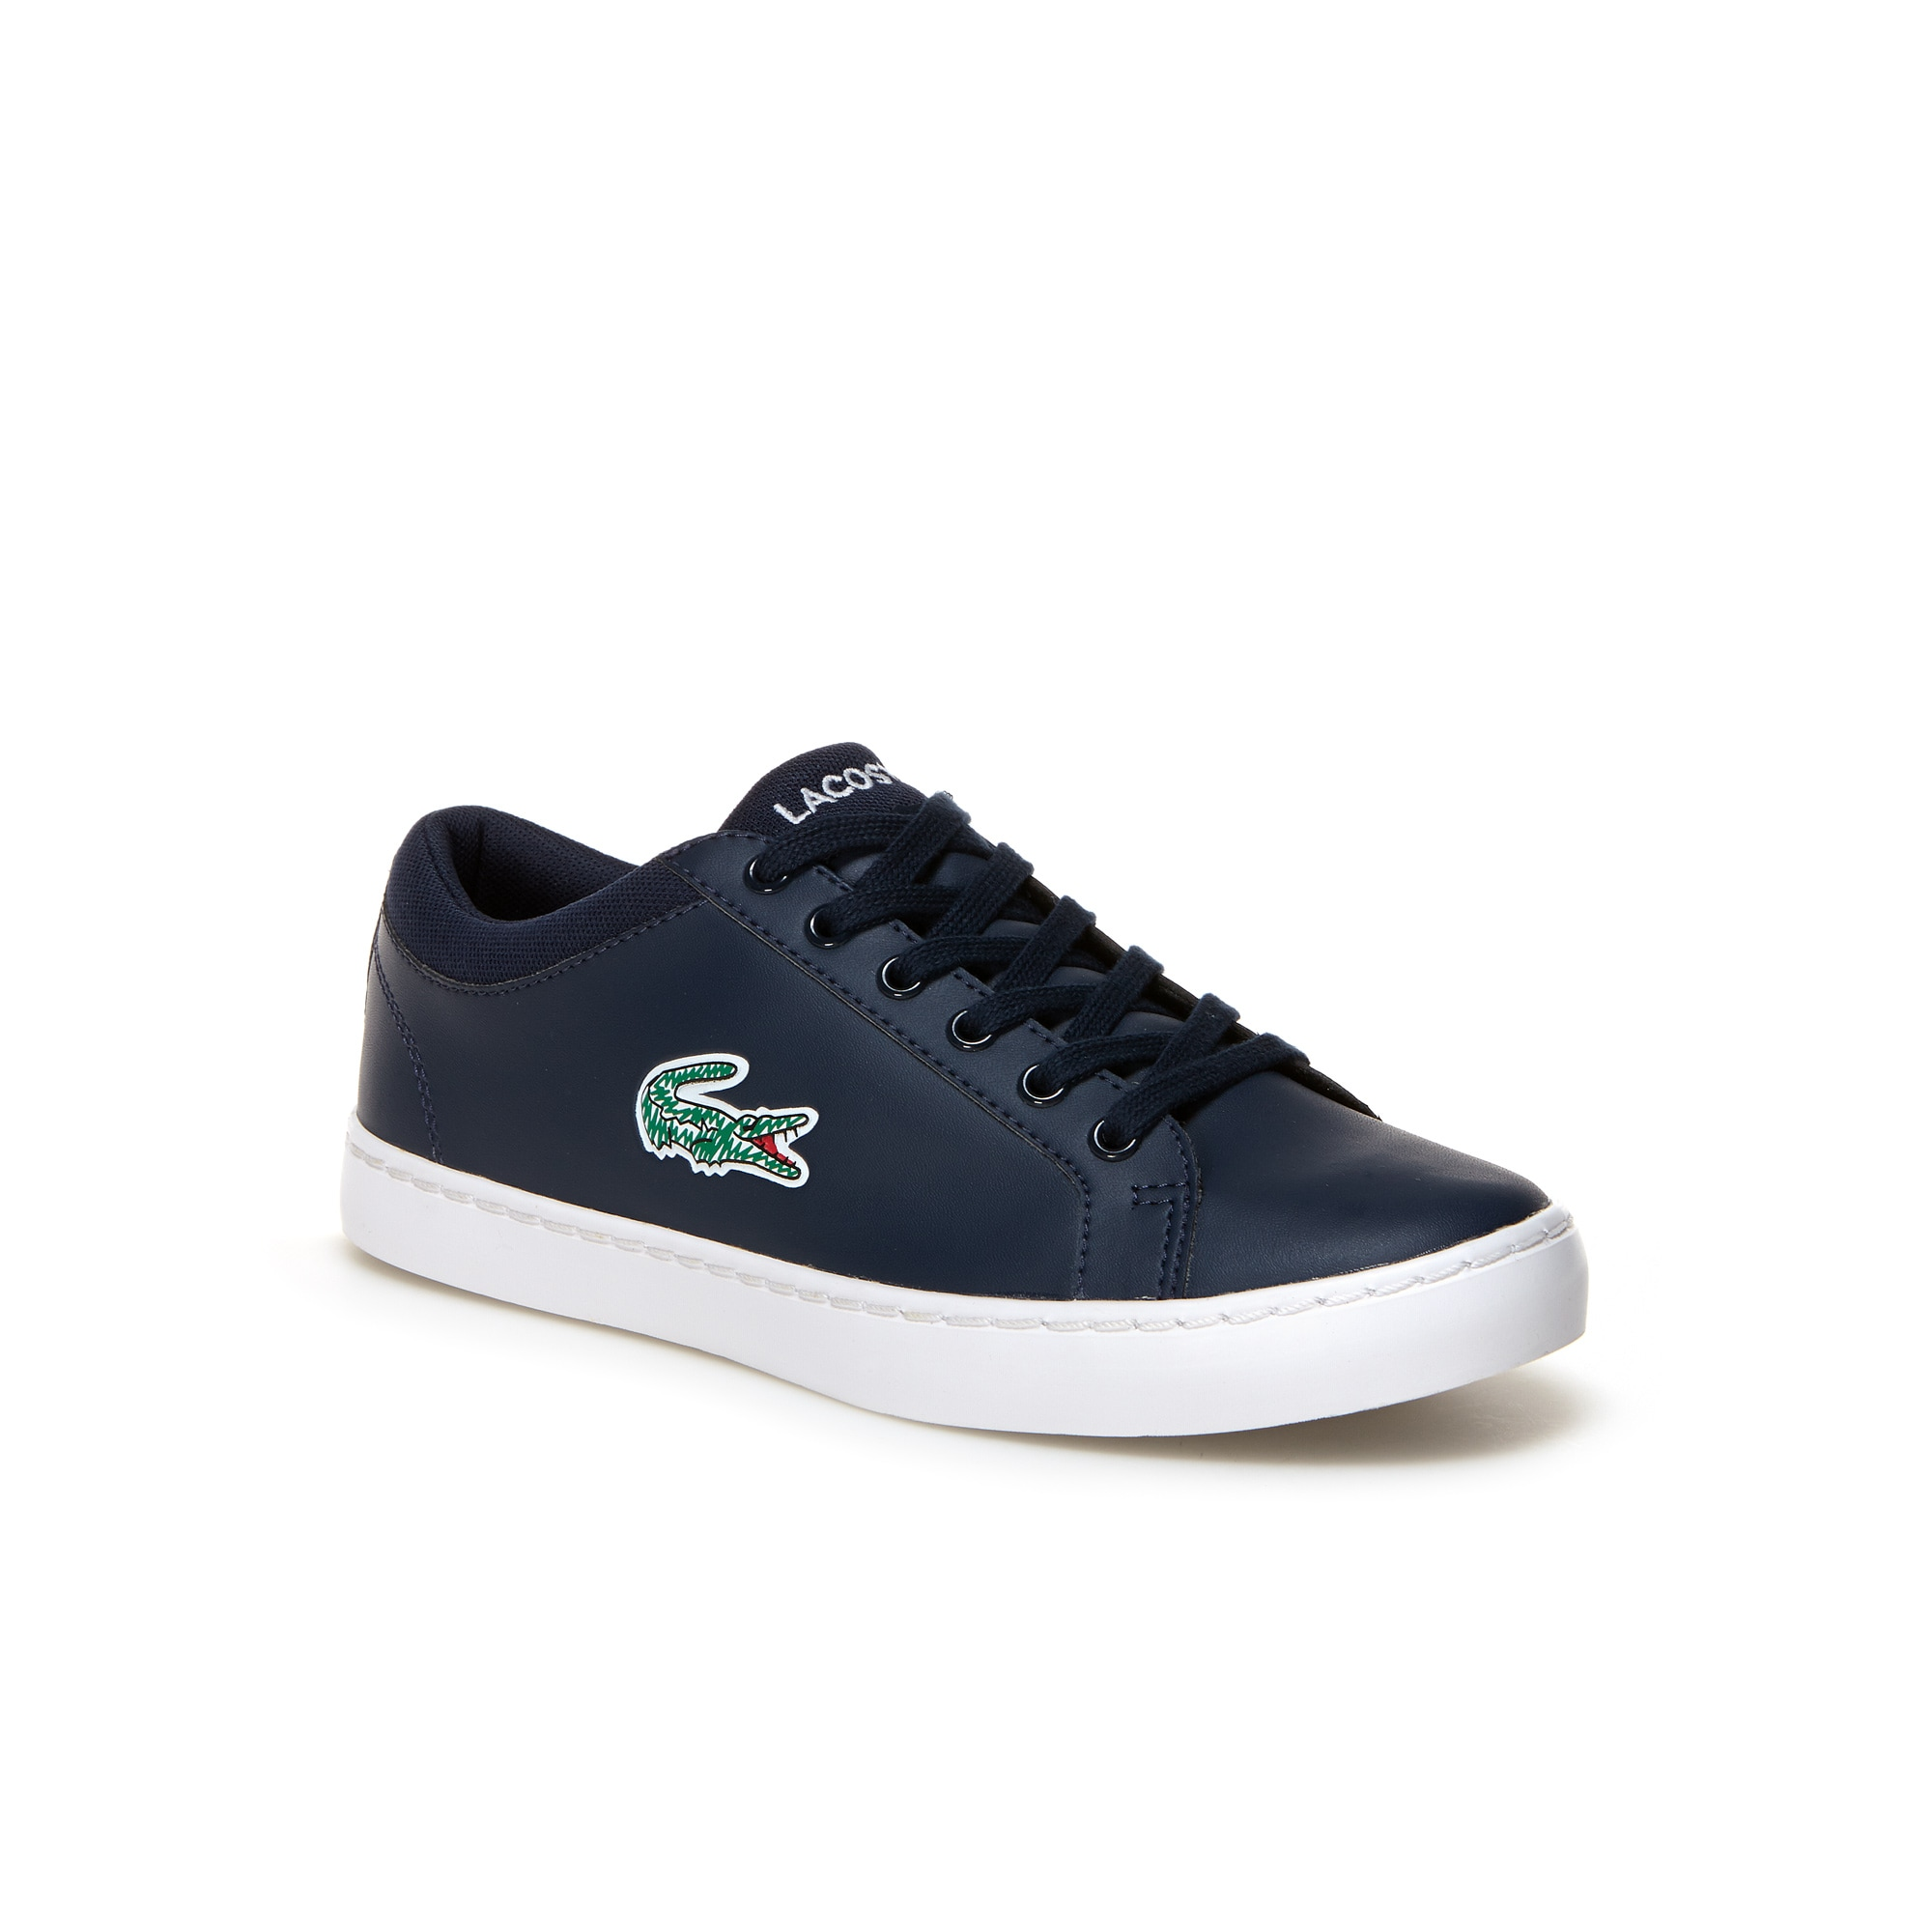 Sneakers Straightset Lace kids' in similpelle